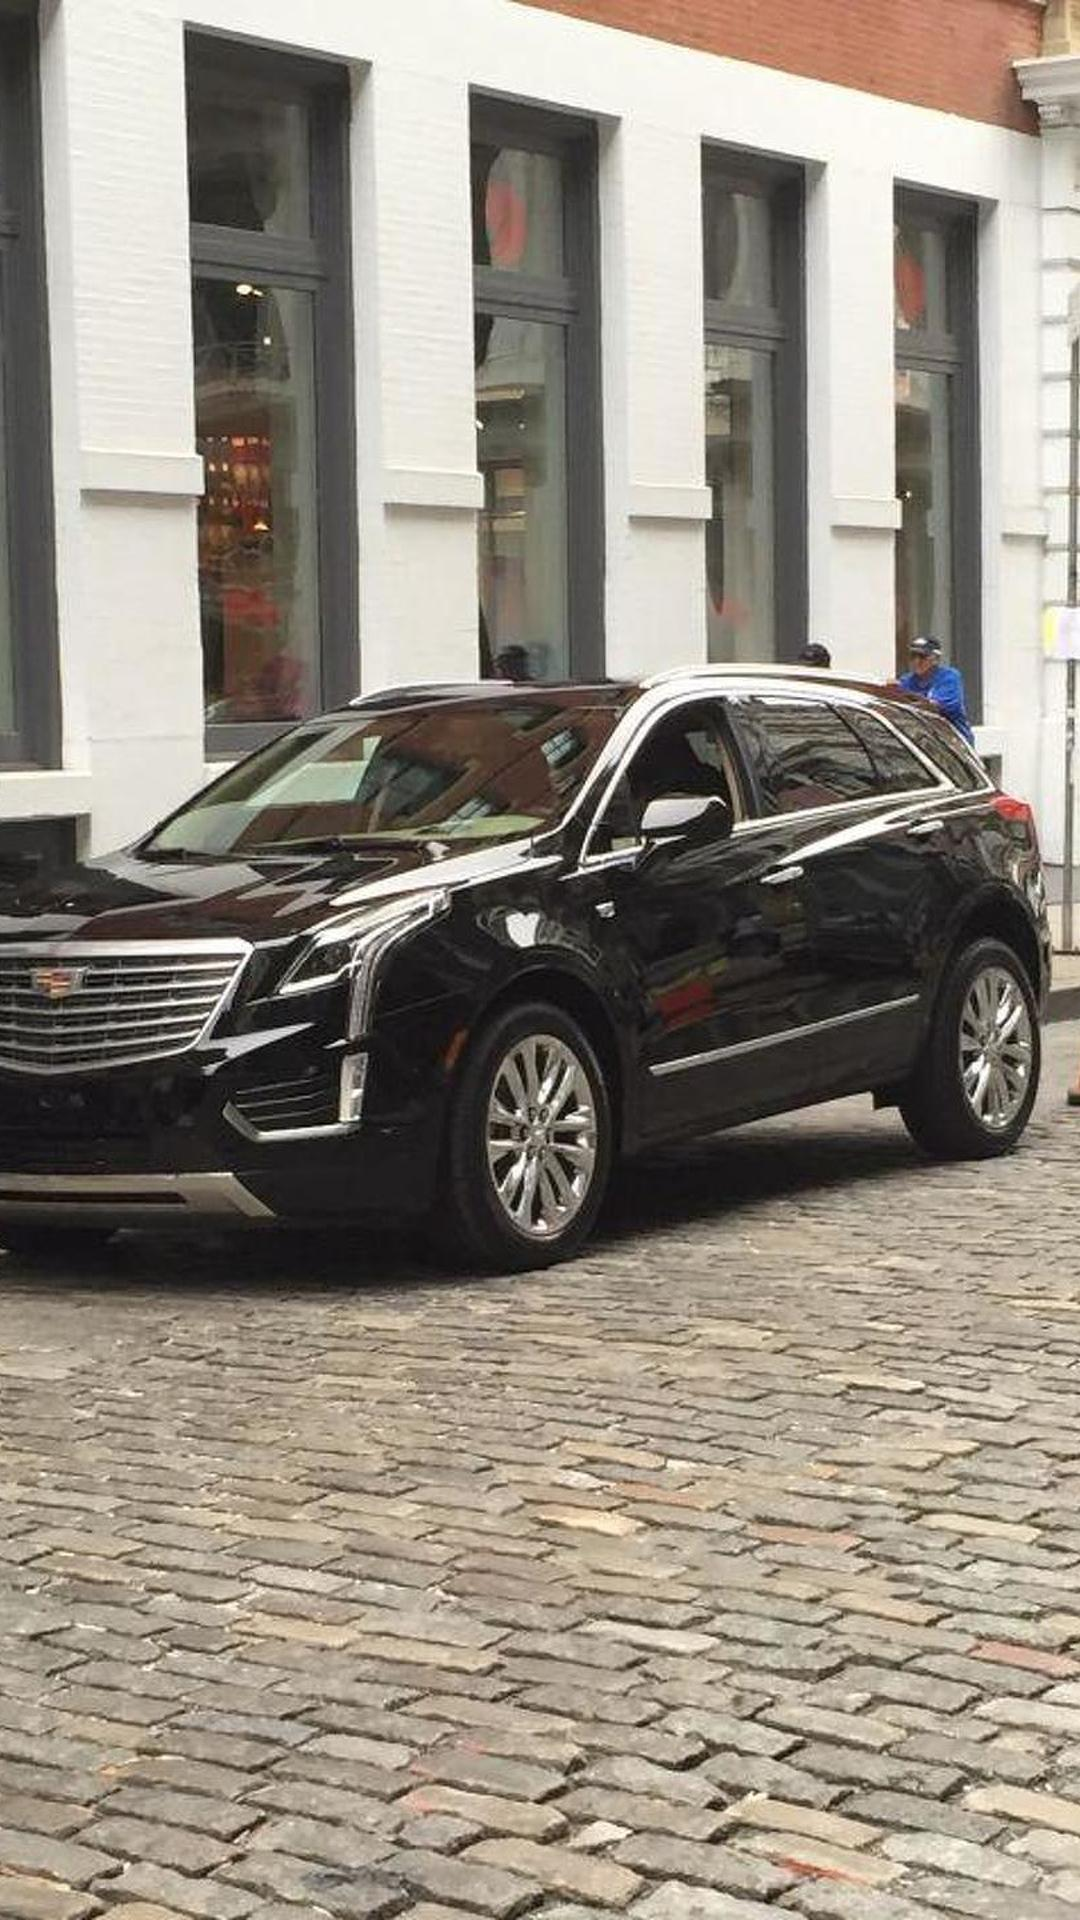 Cadillac XT5 photographed undisguised in New York